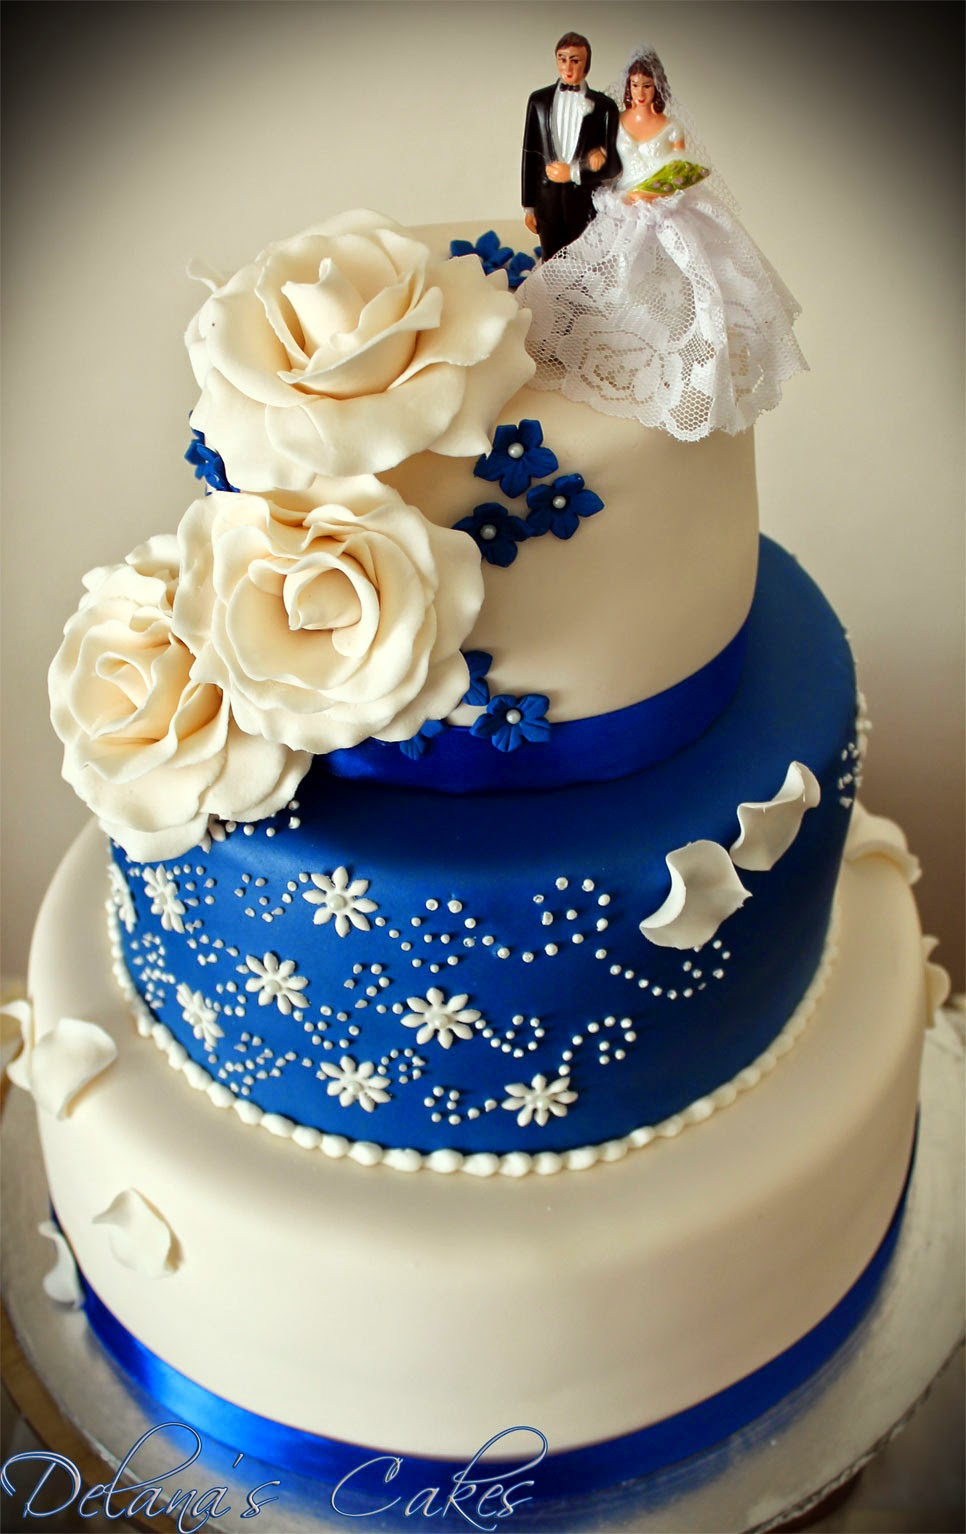 Delana s Cakes: Royal Blue and White Wedding Cake